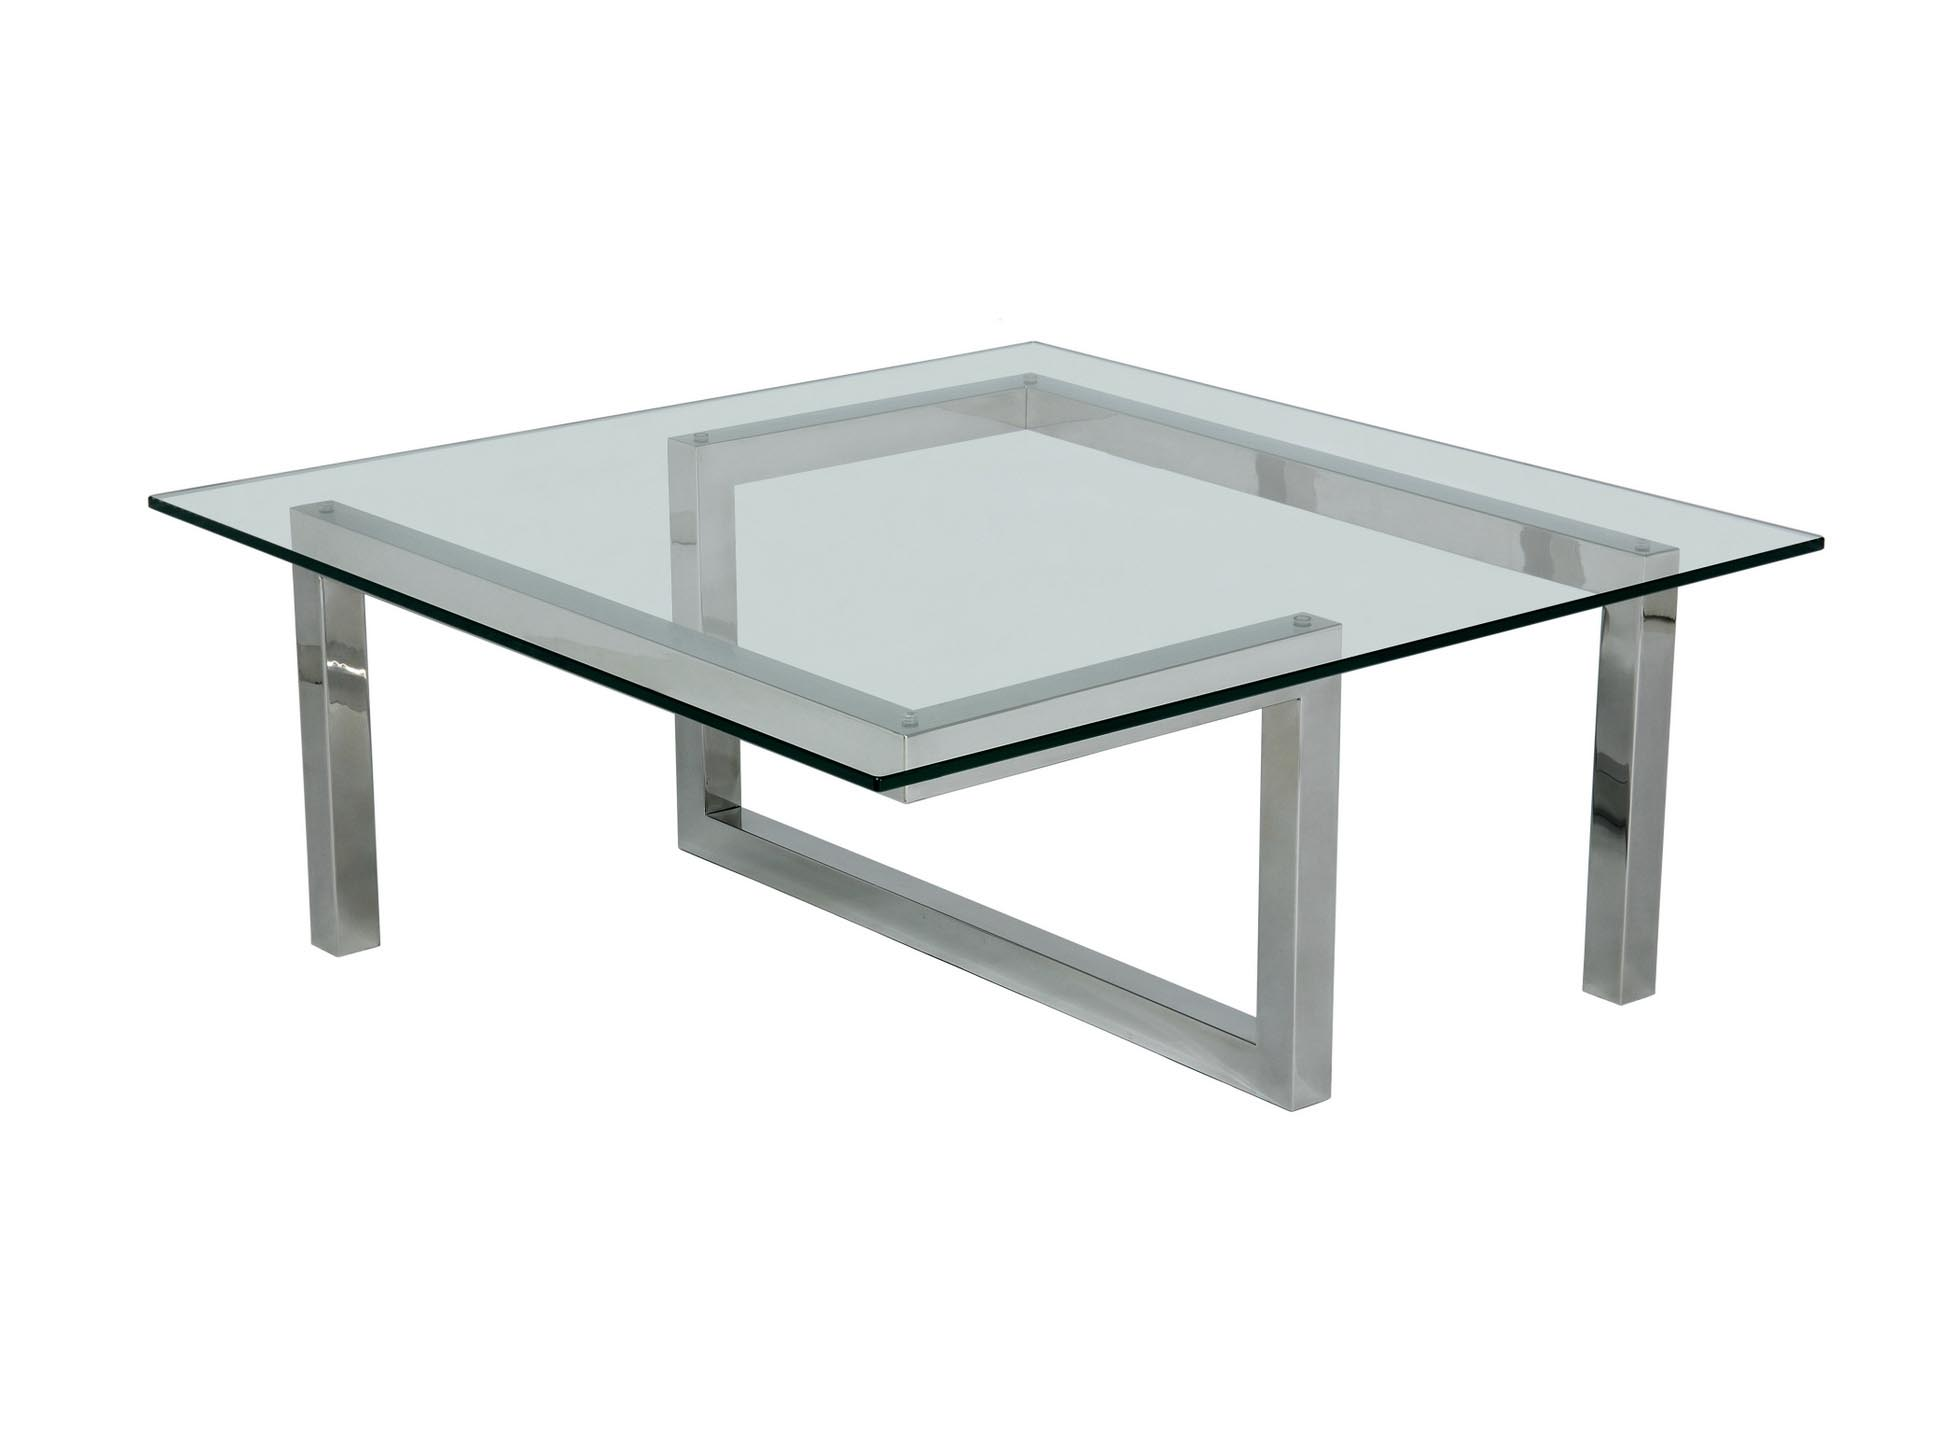 Stainless Steel And Glass Coffee Tables Coffee Table Design Ideas: steel and glass coffee table